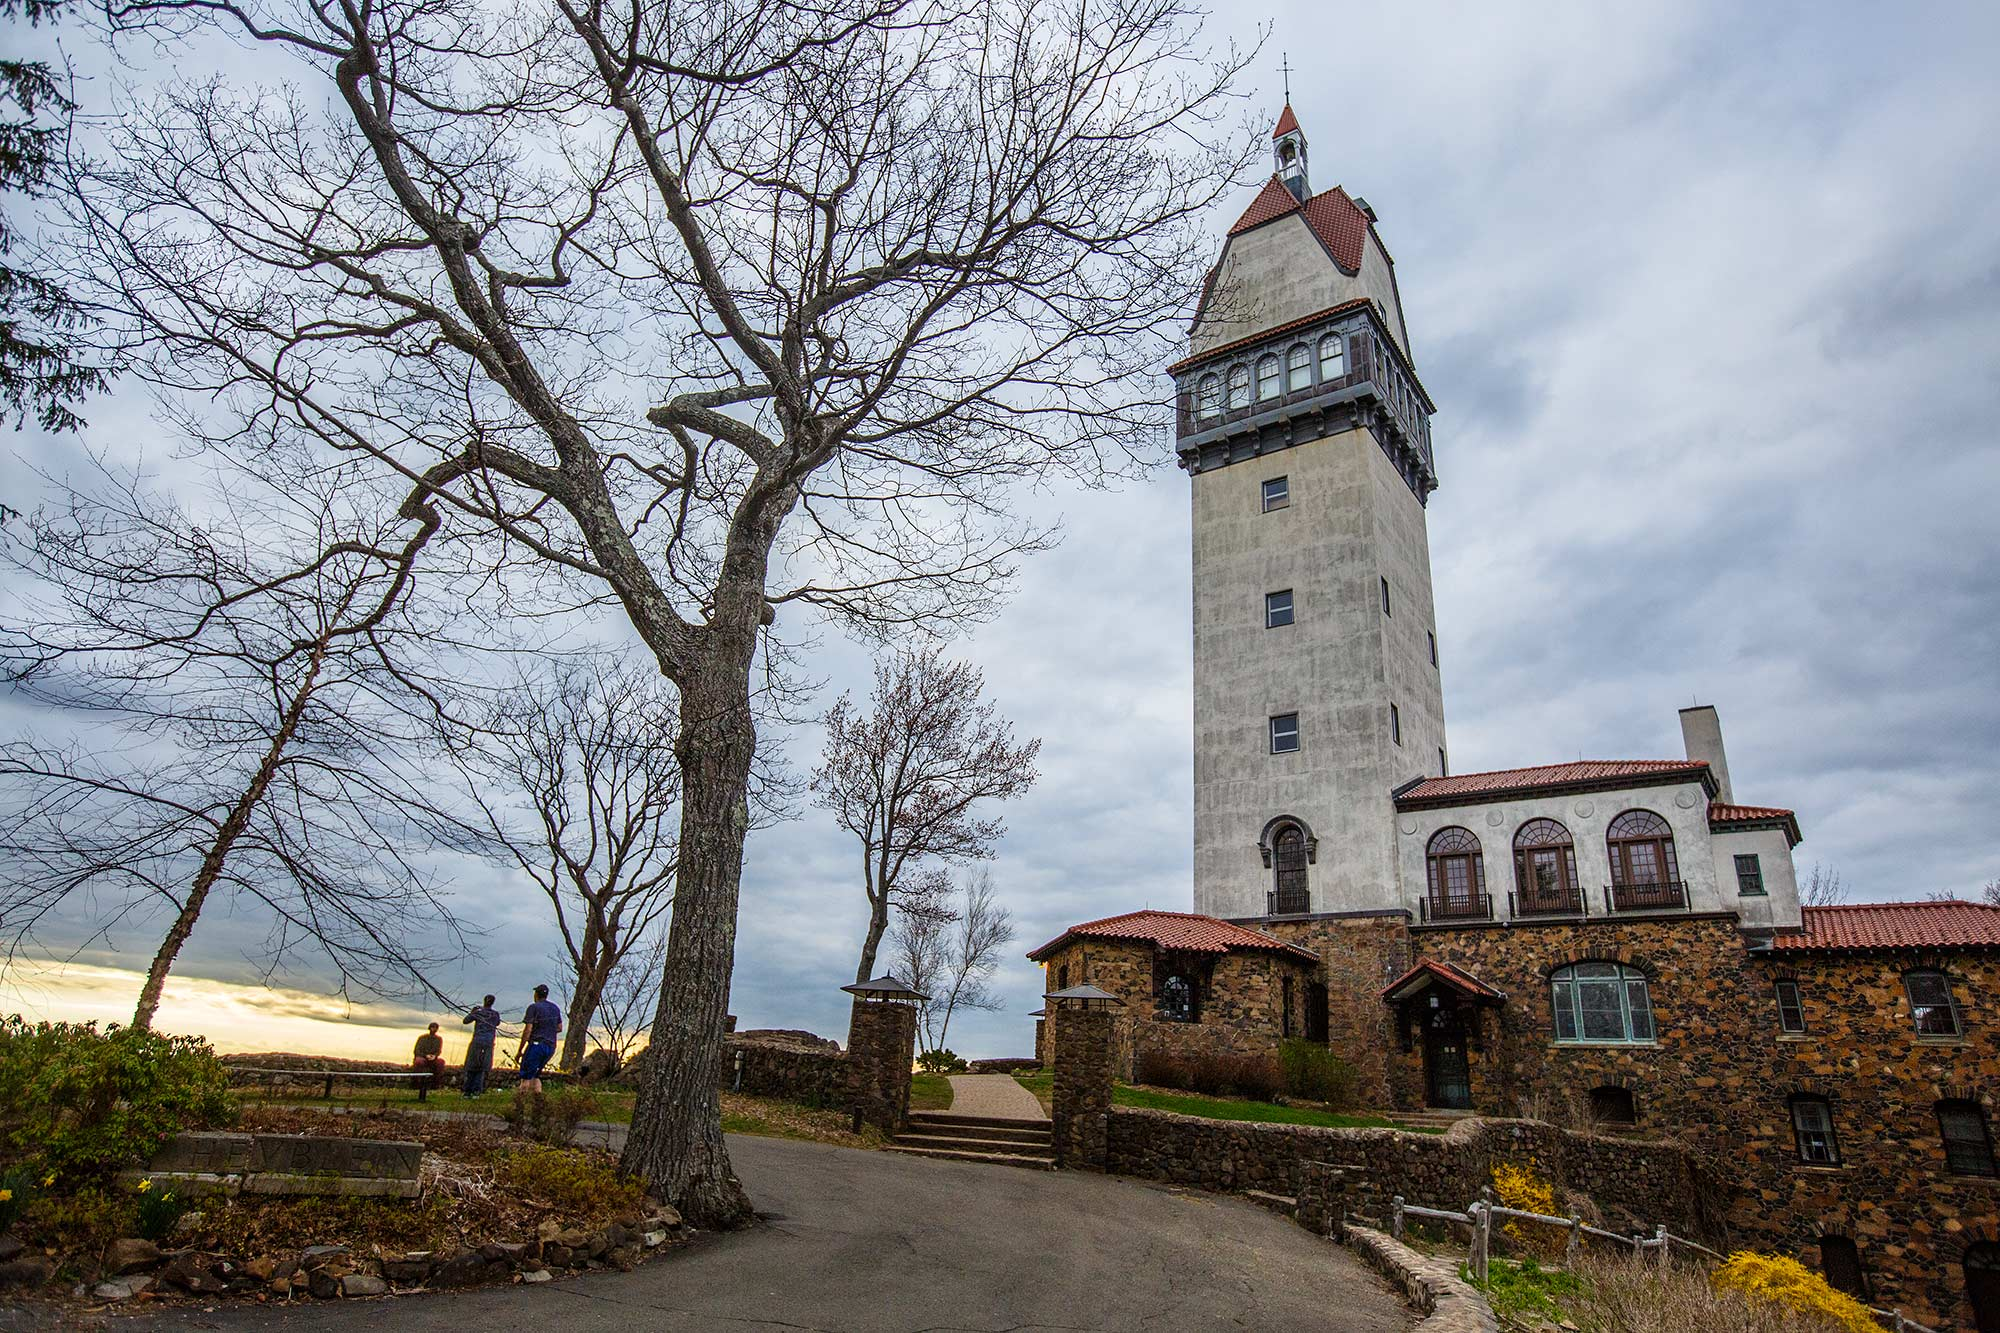 First Trip to Heublein Tower this Spring, SImsbury, CT - 5/1/15